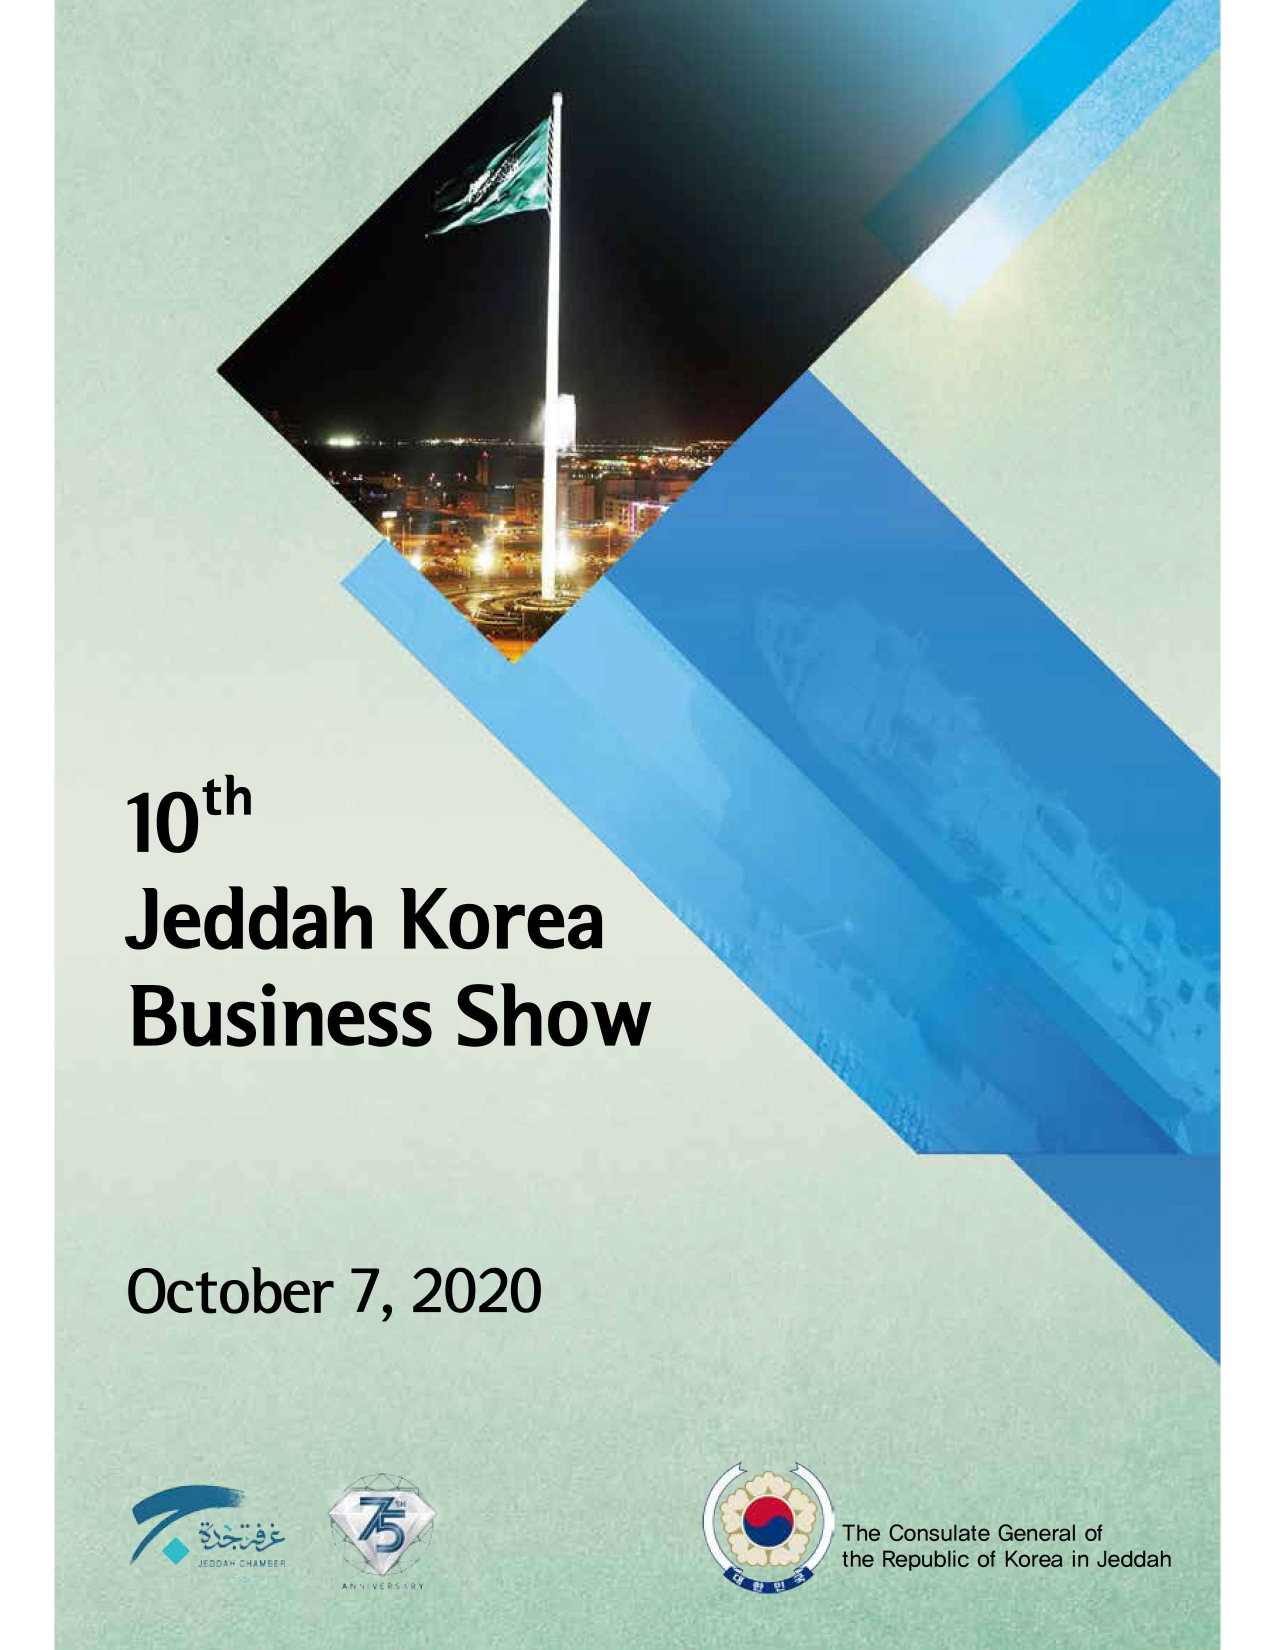 10th jeddah korea business show